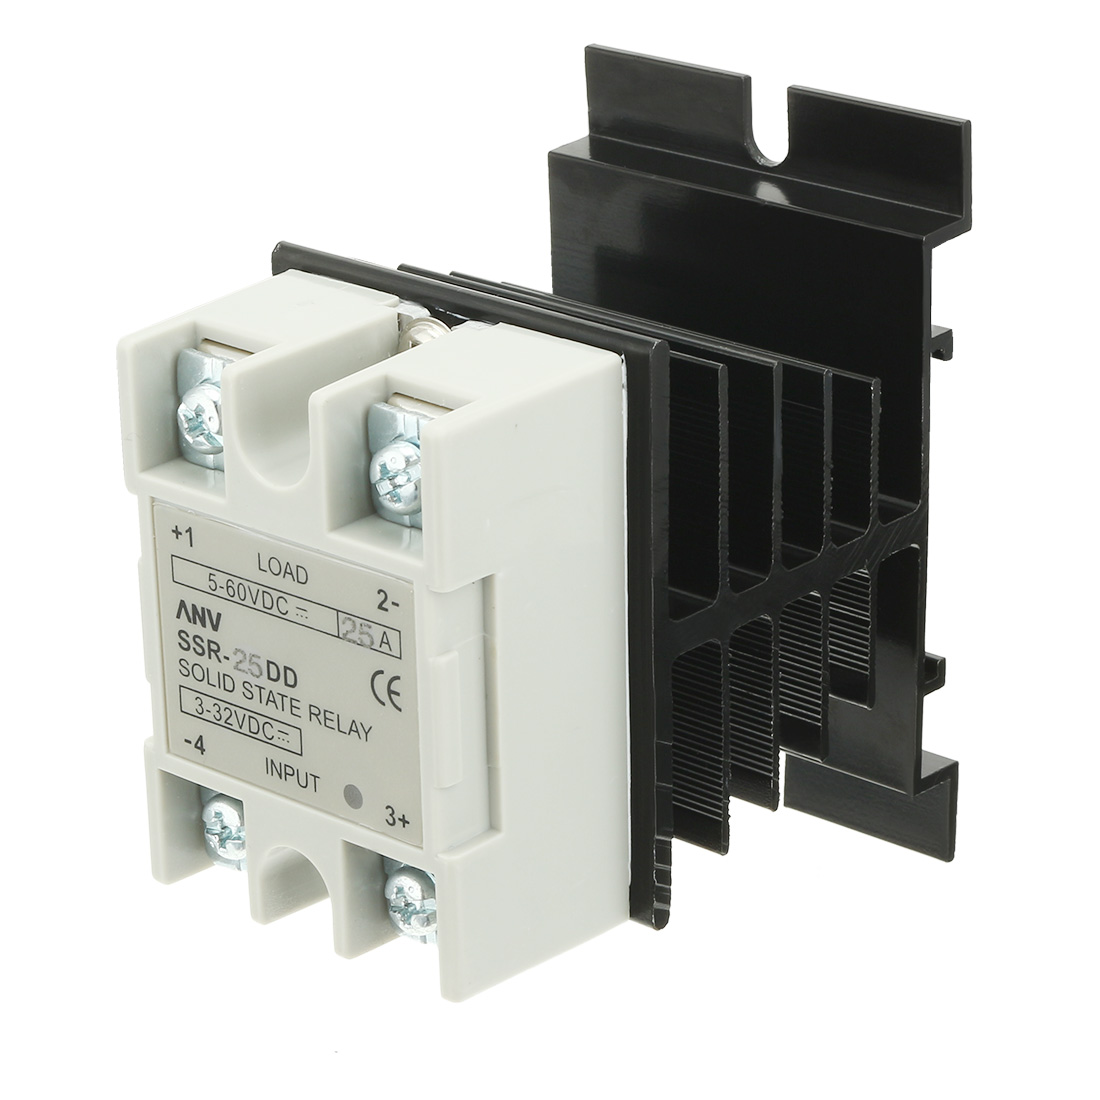 Ssr 25dd 25a Dc3 32v To Dc5 60v Solid State Relay Heat Sink Used In Circuit Breaker Thermal Compound